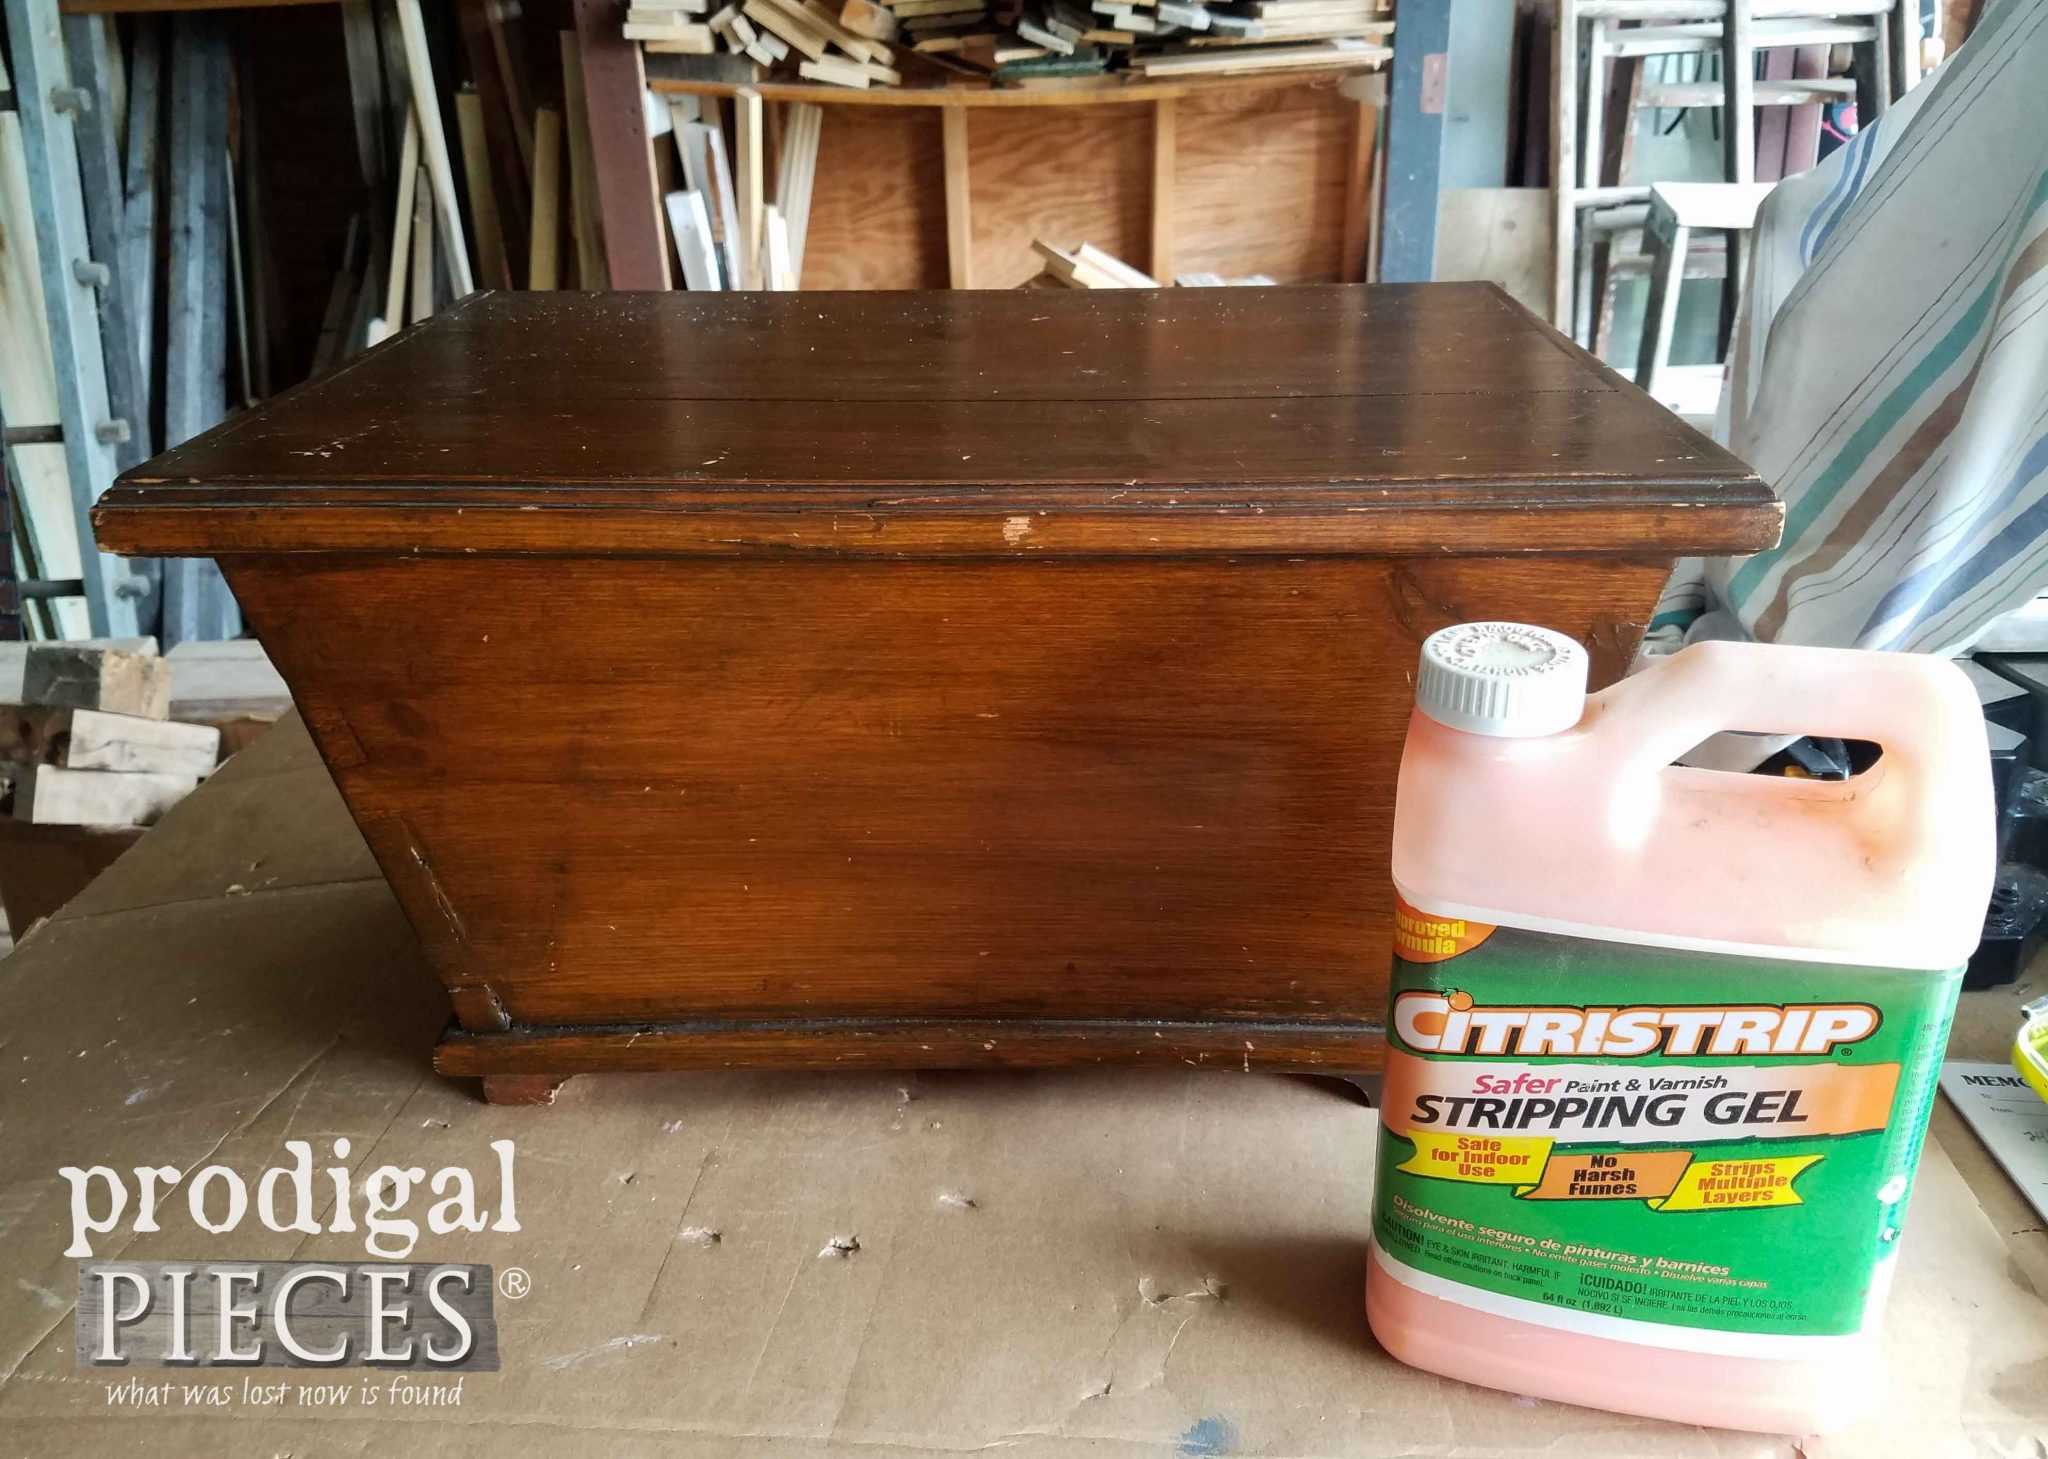 Using CitriStrip Stripping Gel to Refinish Chest by Prodigal Pieces | prodigalpieces.com